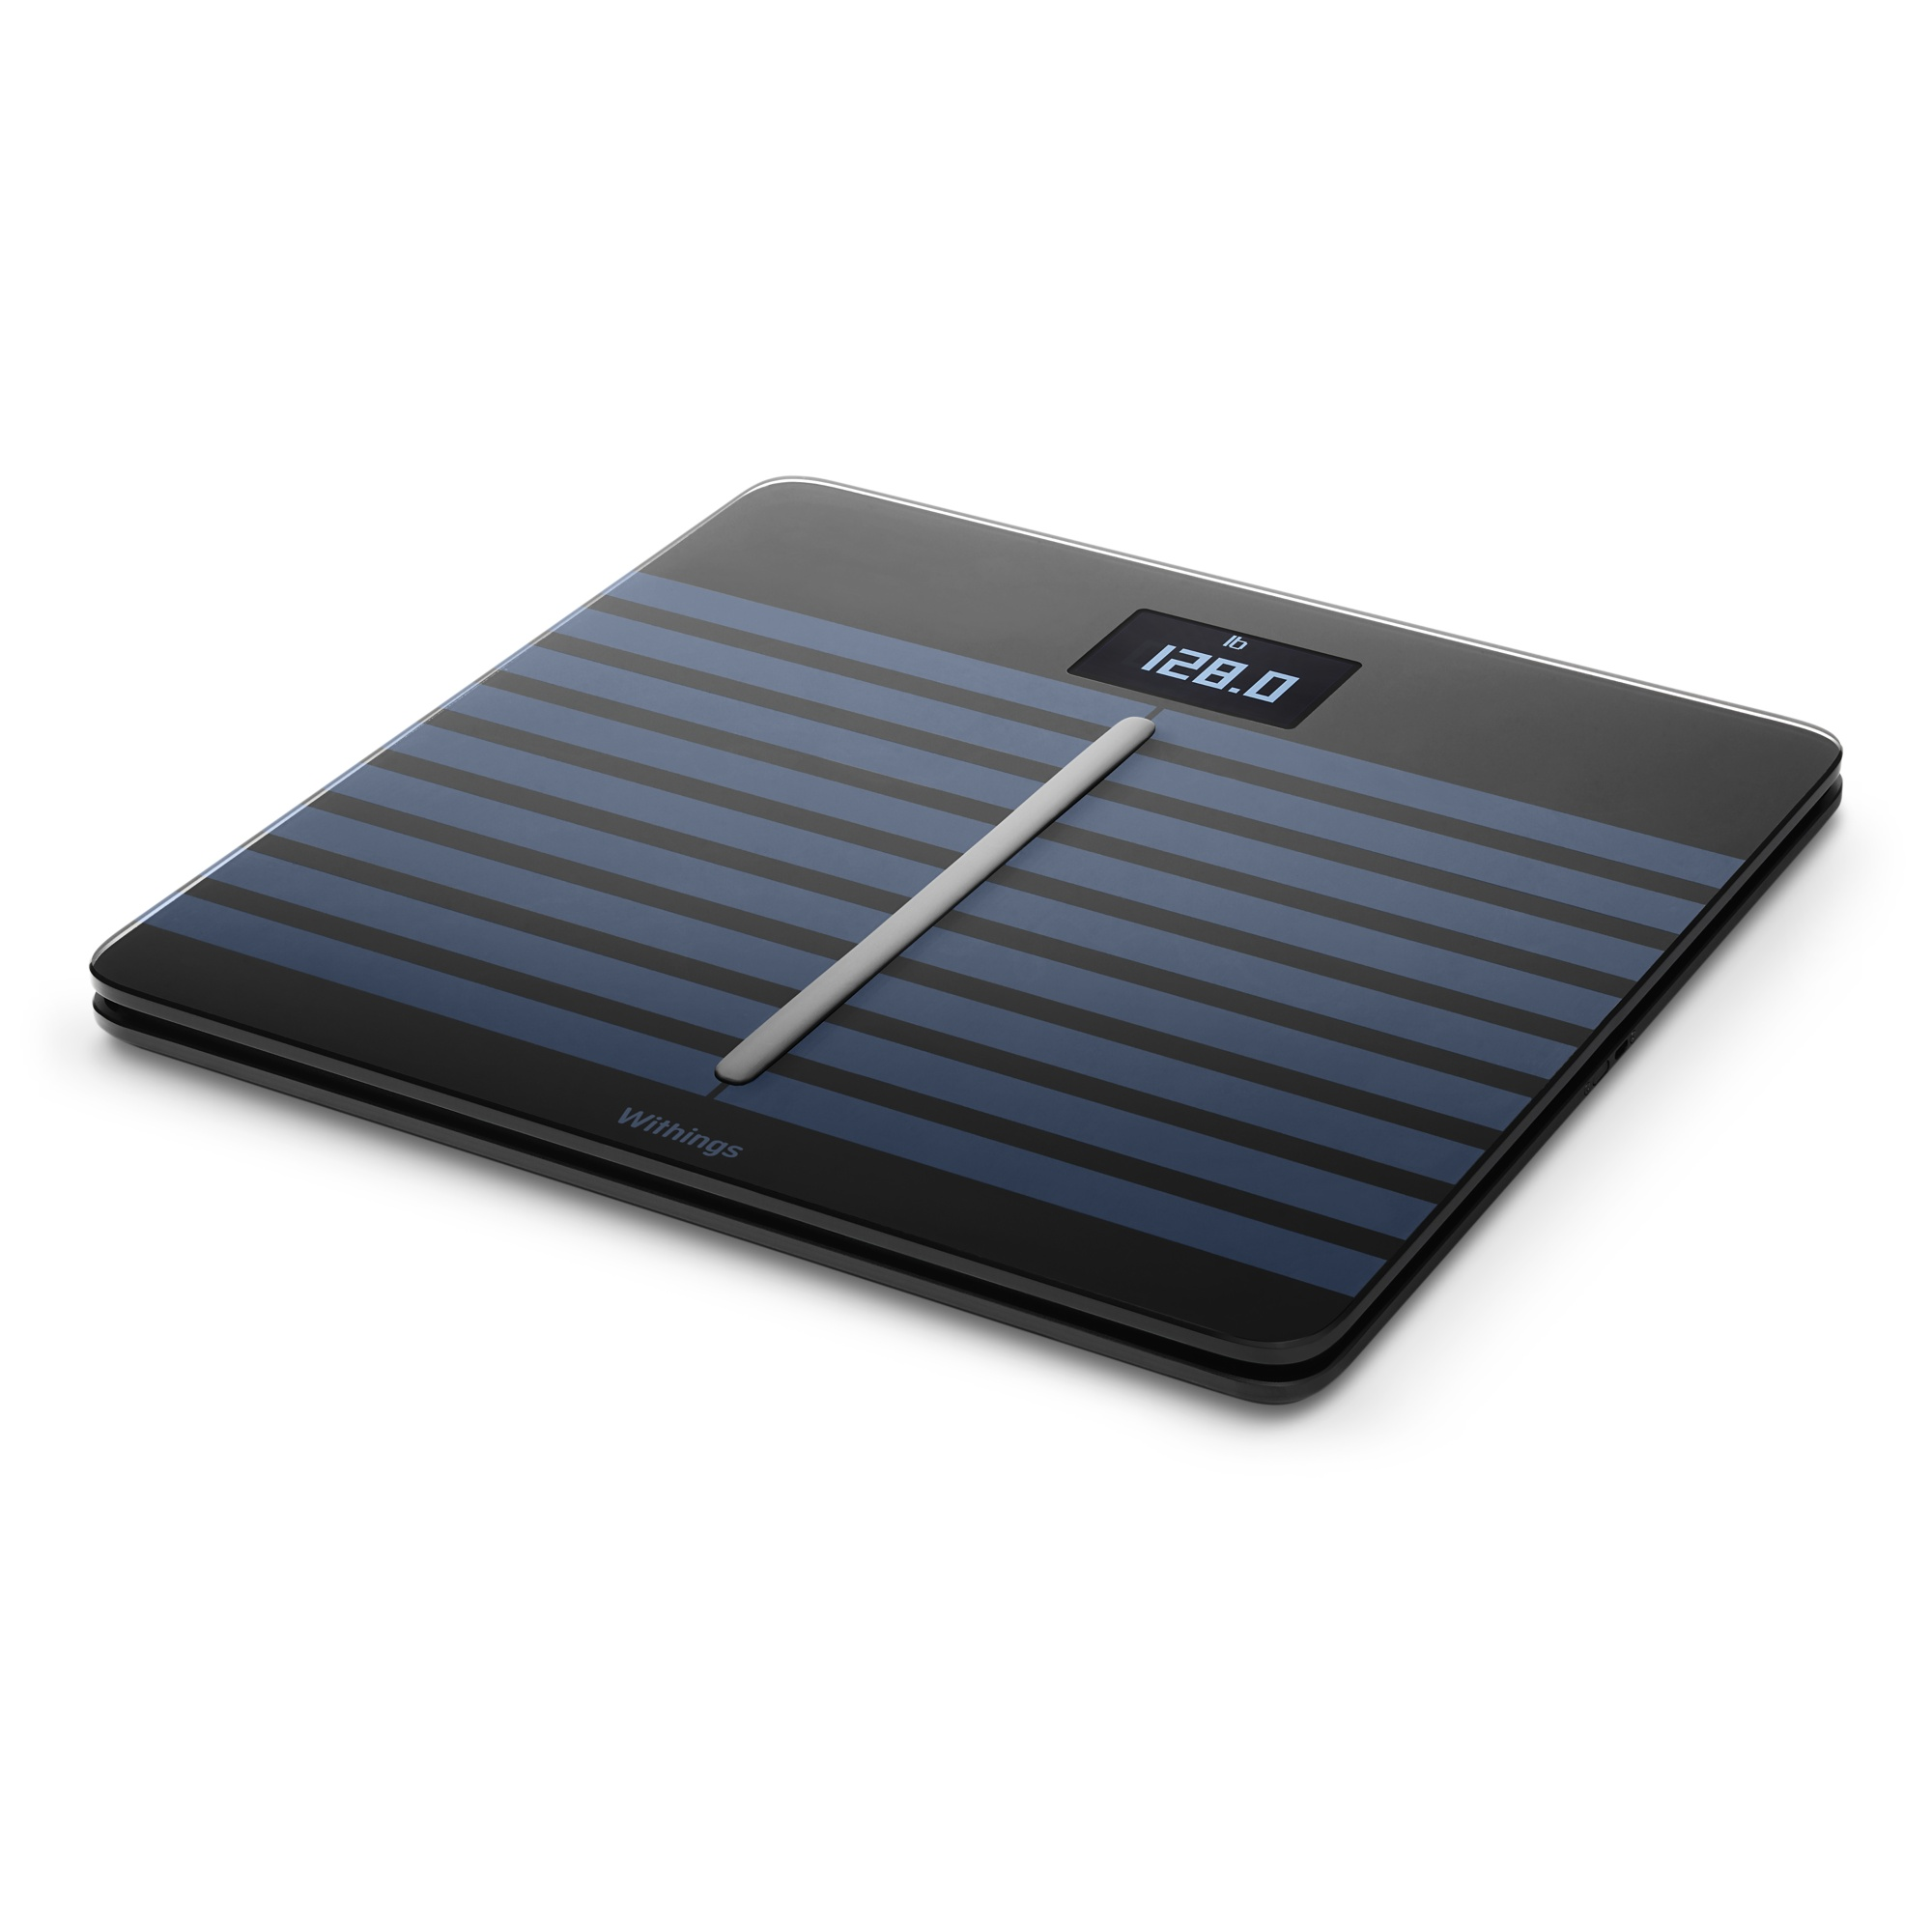 Withings Body Cardio Scale >> Withings Body Cardio Scale For Iphone And Apple Watch Mac Prices